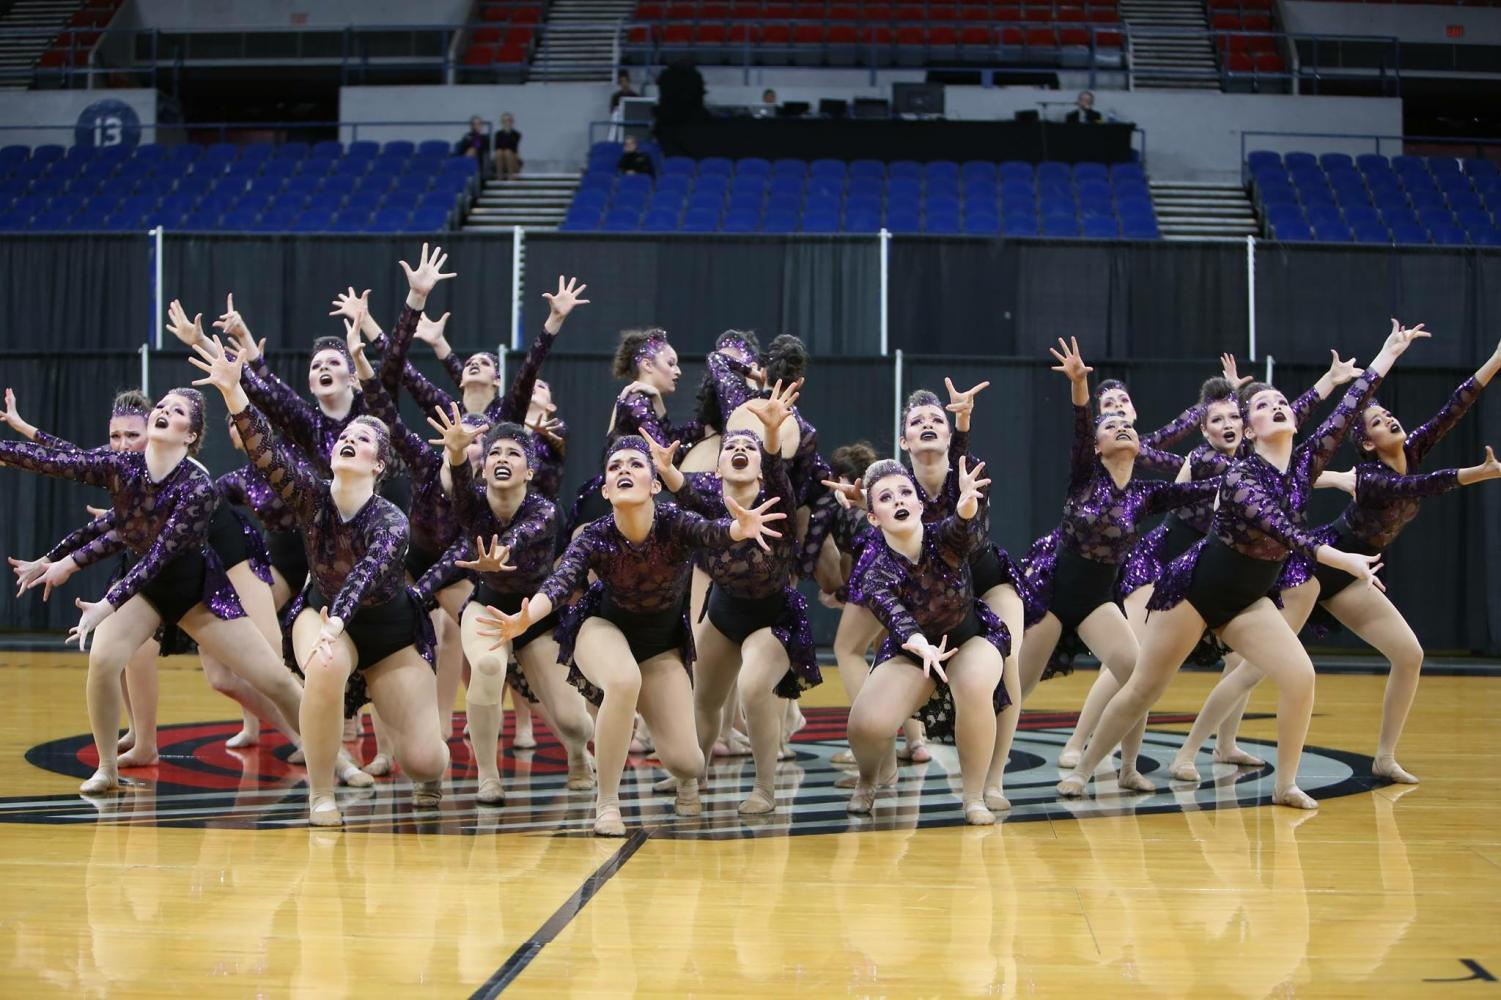 The Rhythmettes Dance Team at State competition